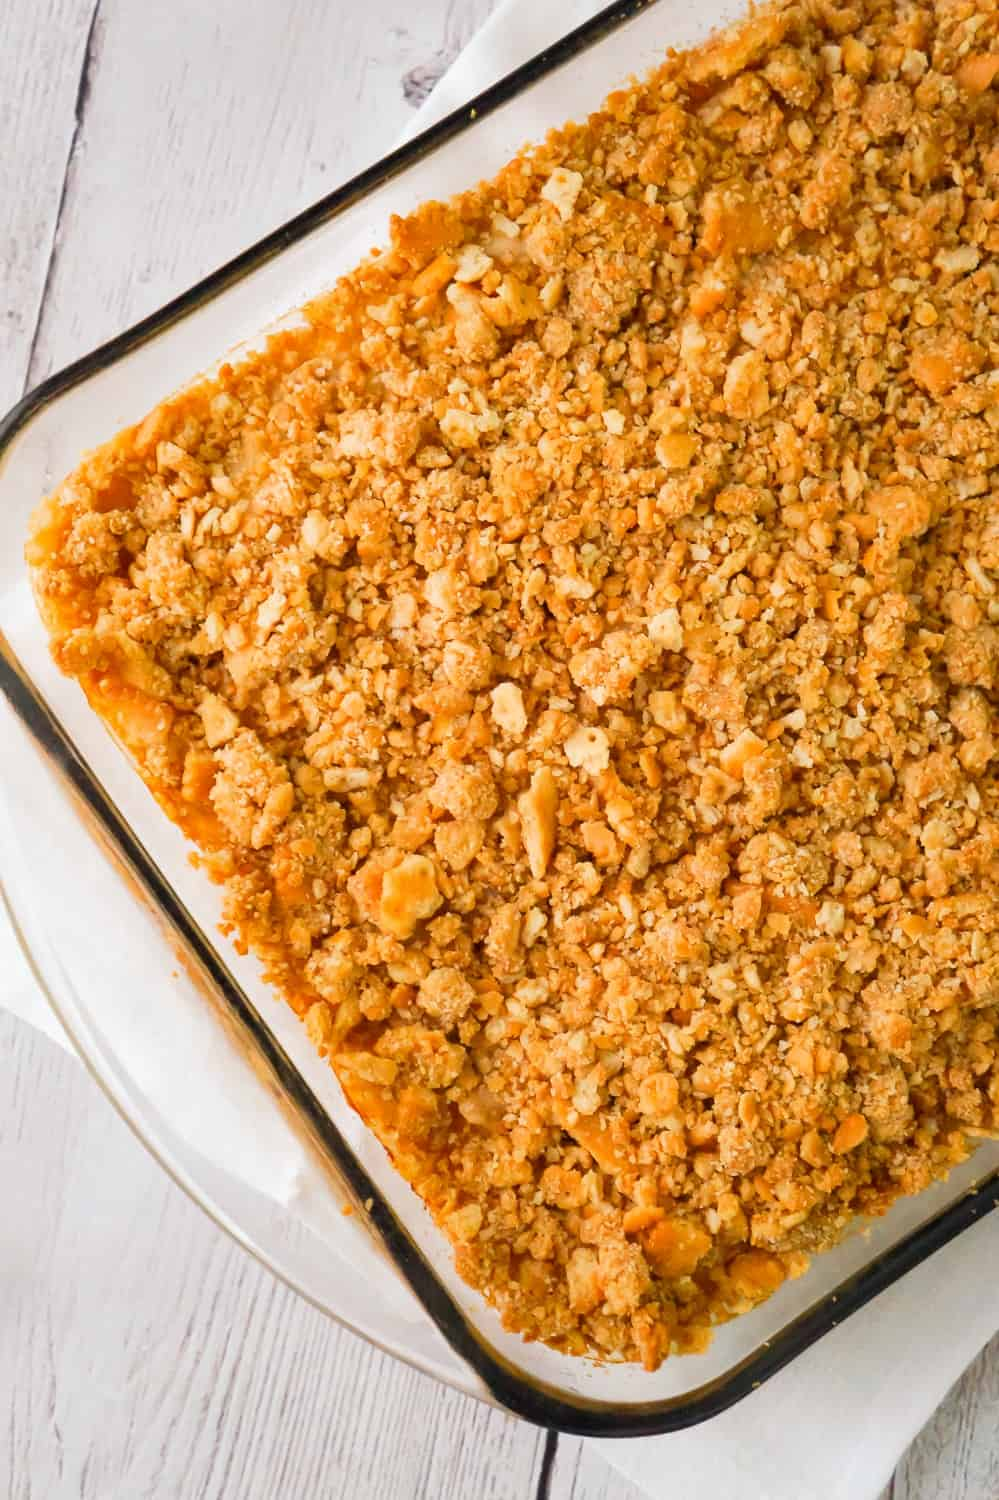 Easy Chicken and Rice Casserole is a hearty dinner recipe perfect for cold weather. This delicious chicken casserole is loaded with long grain rice, Campbell's cream of chicken soup, corn and topped with crumbled Ritz crackers.